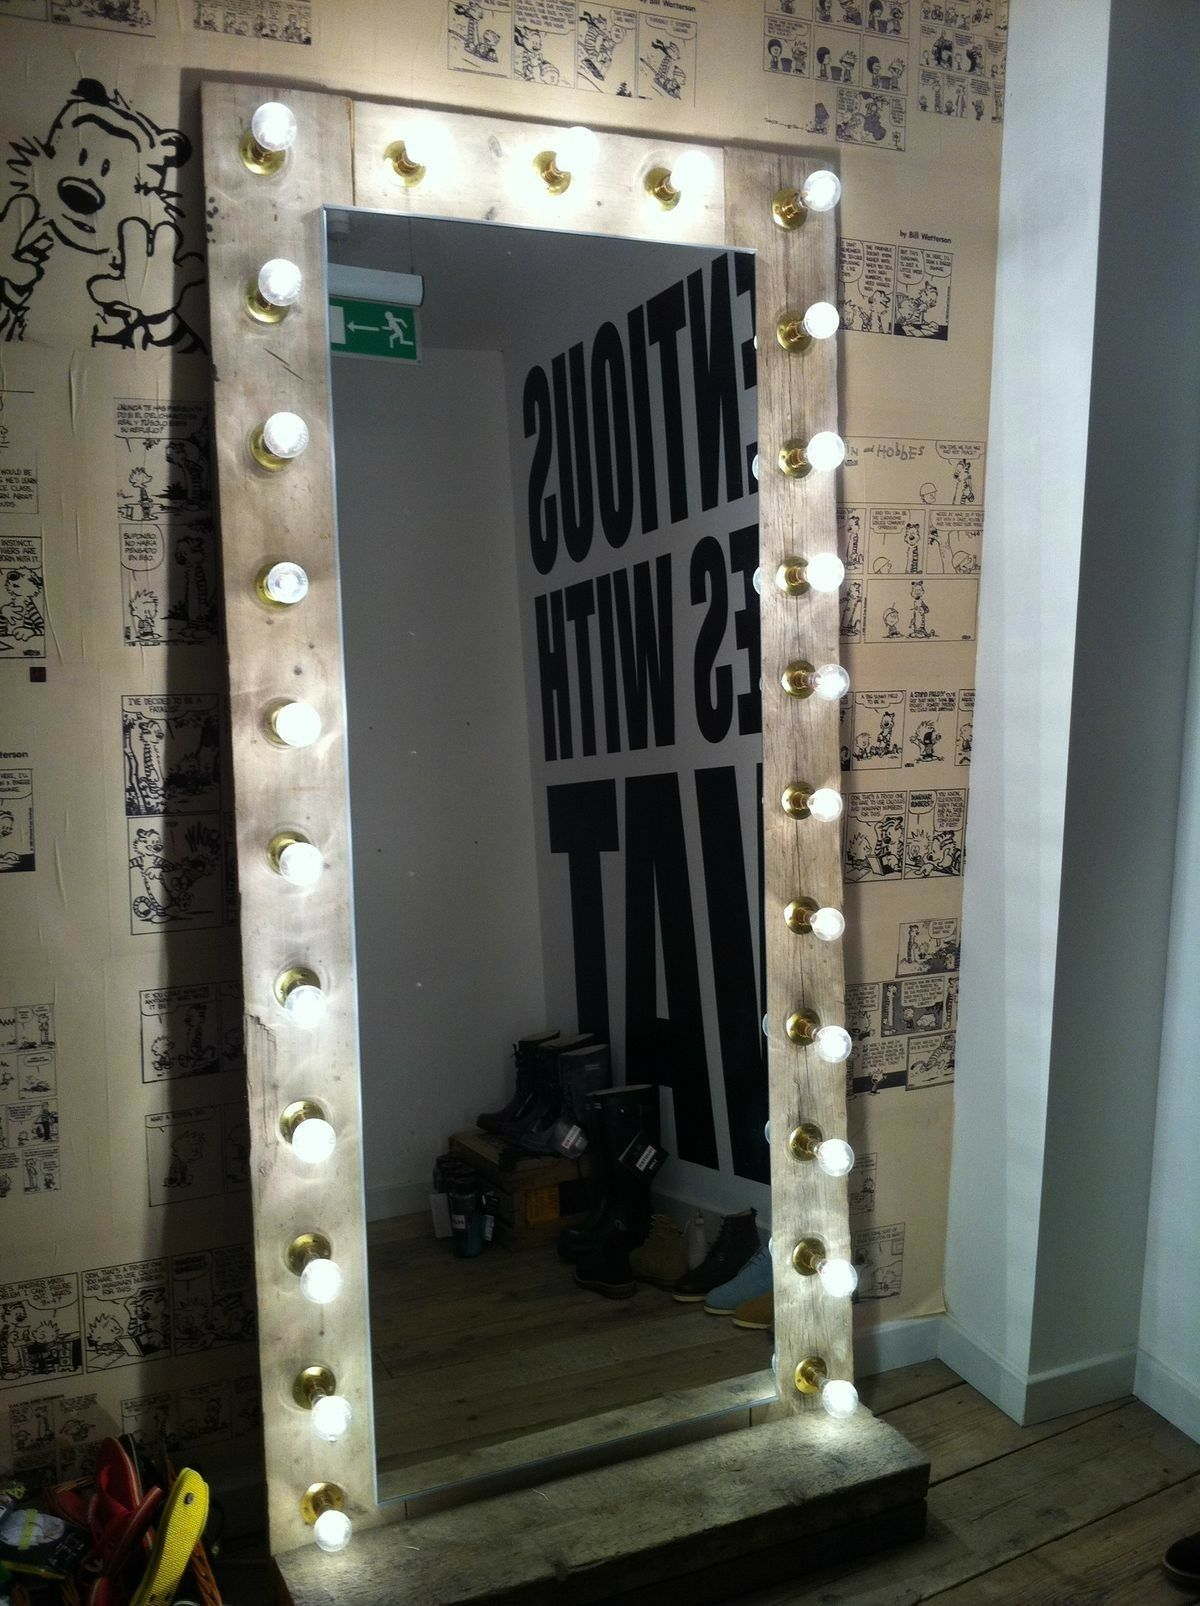 Tall Vanity Mirror Diy Vanity Mirror Diy Vanity Mirror With Lights Diy Vanity